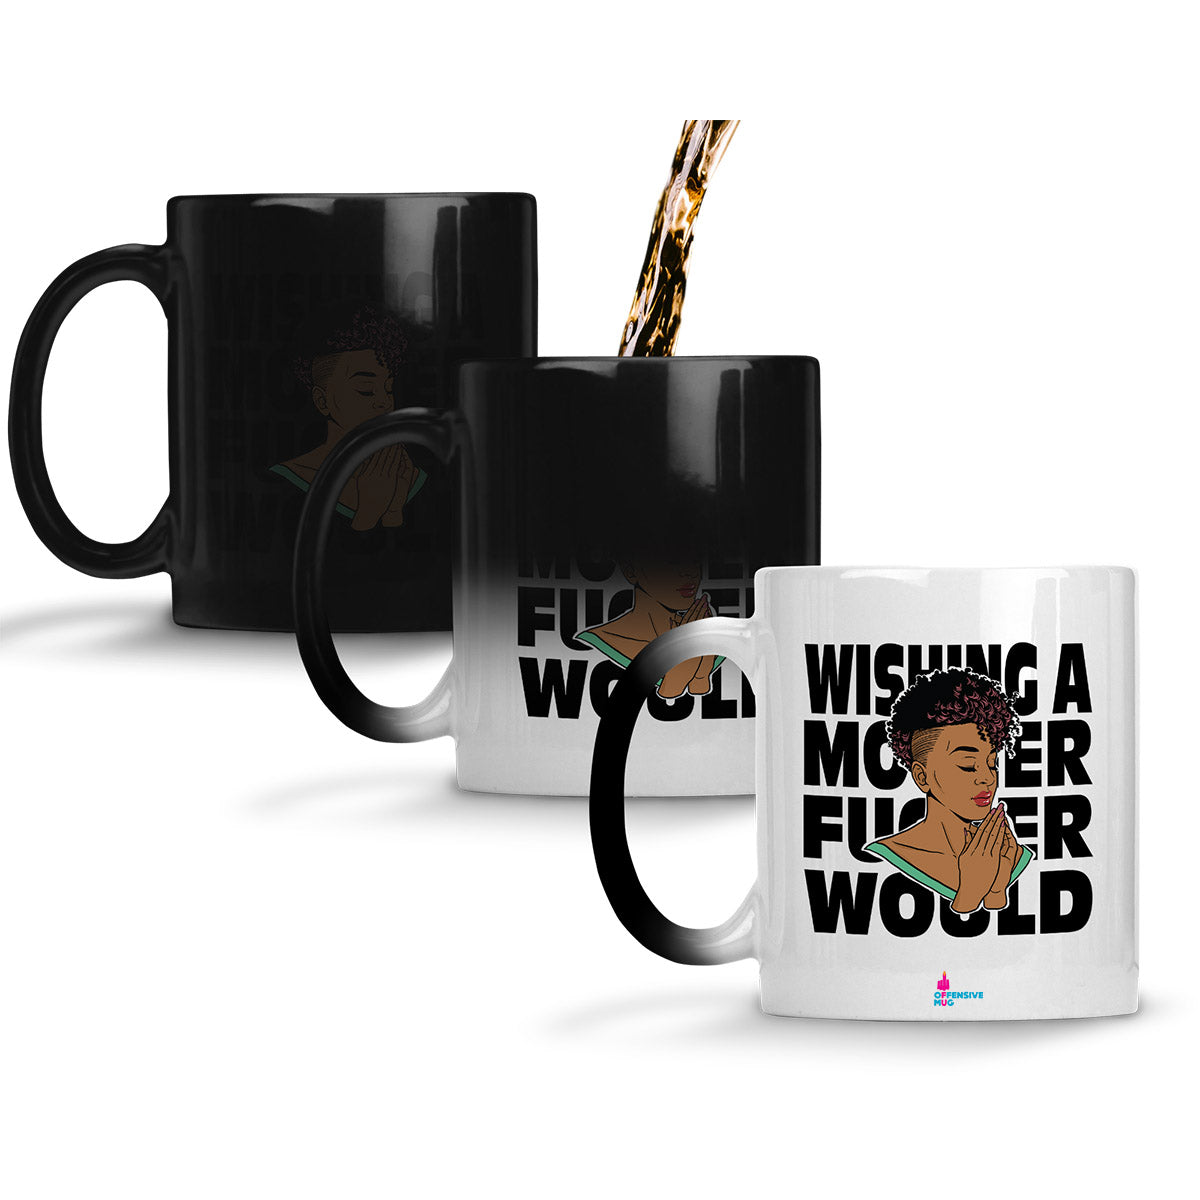 Rini Magic Mug - Offensive Mug